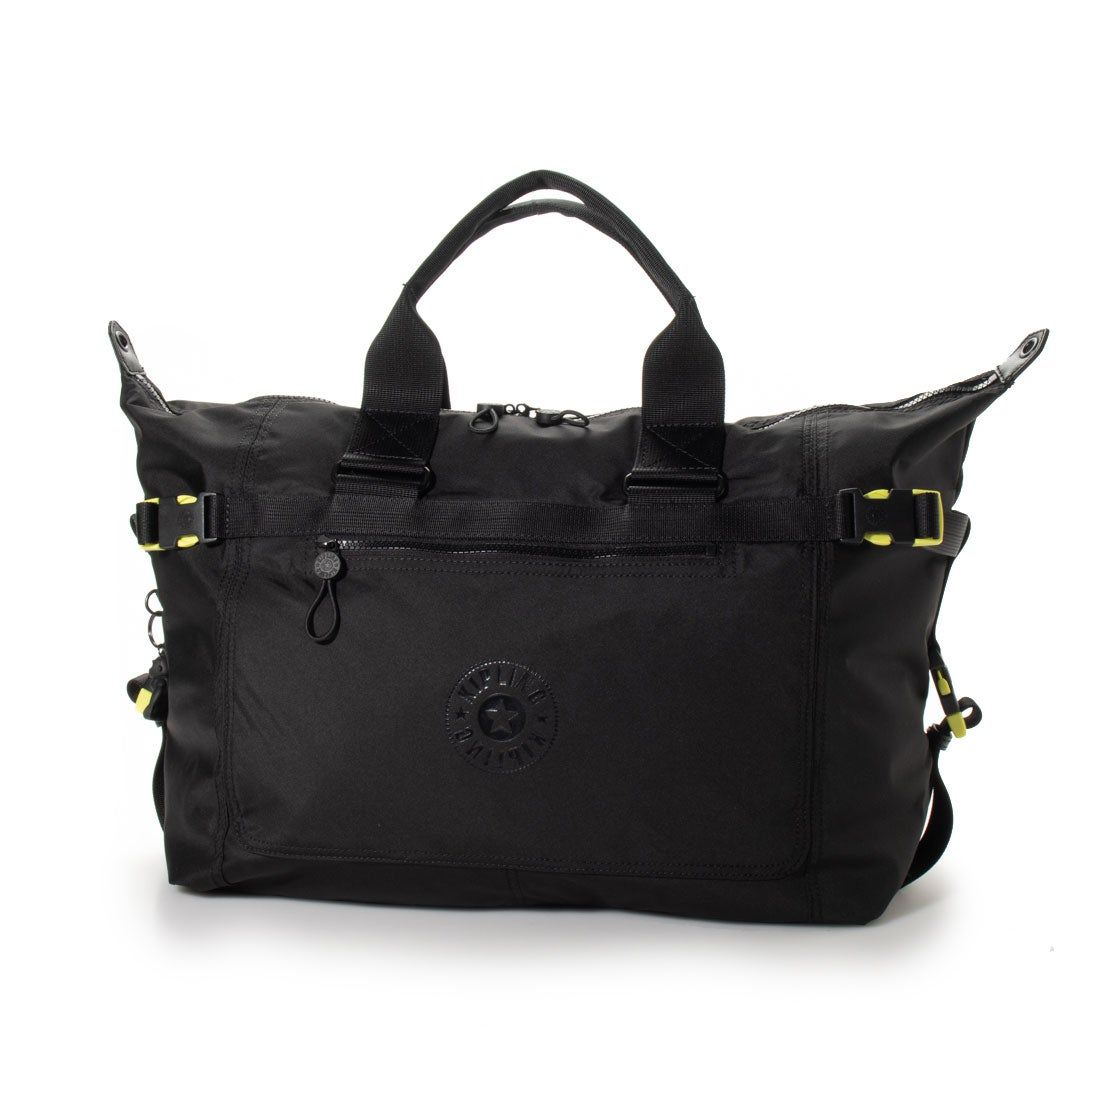 キプリング Kipling KALA M (Spicy Black)